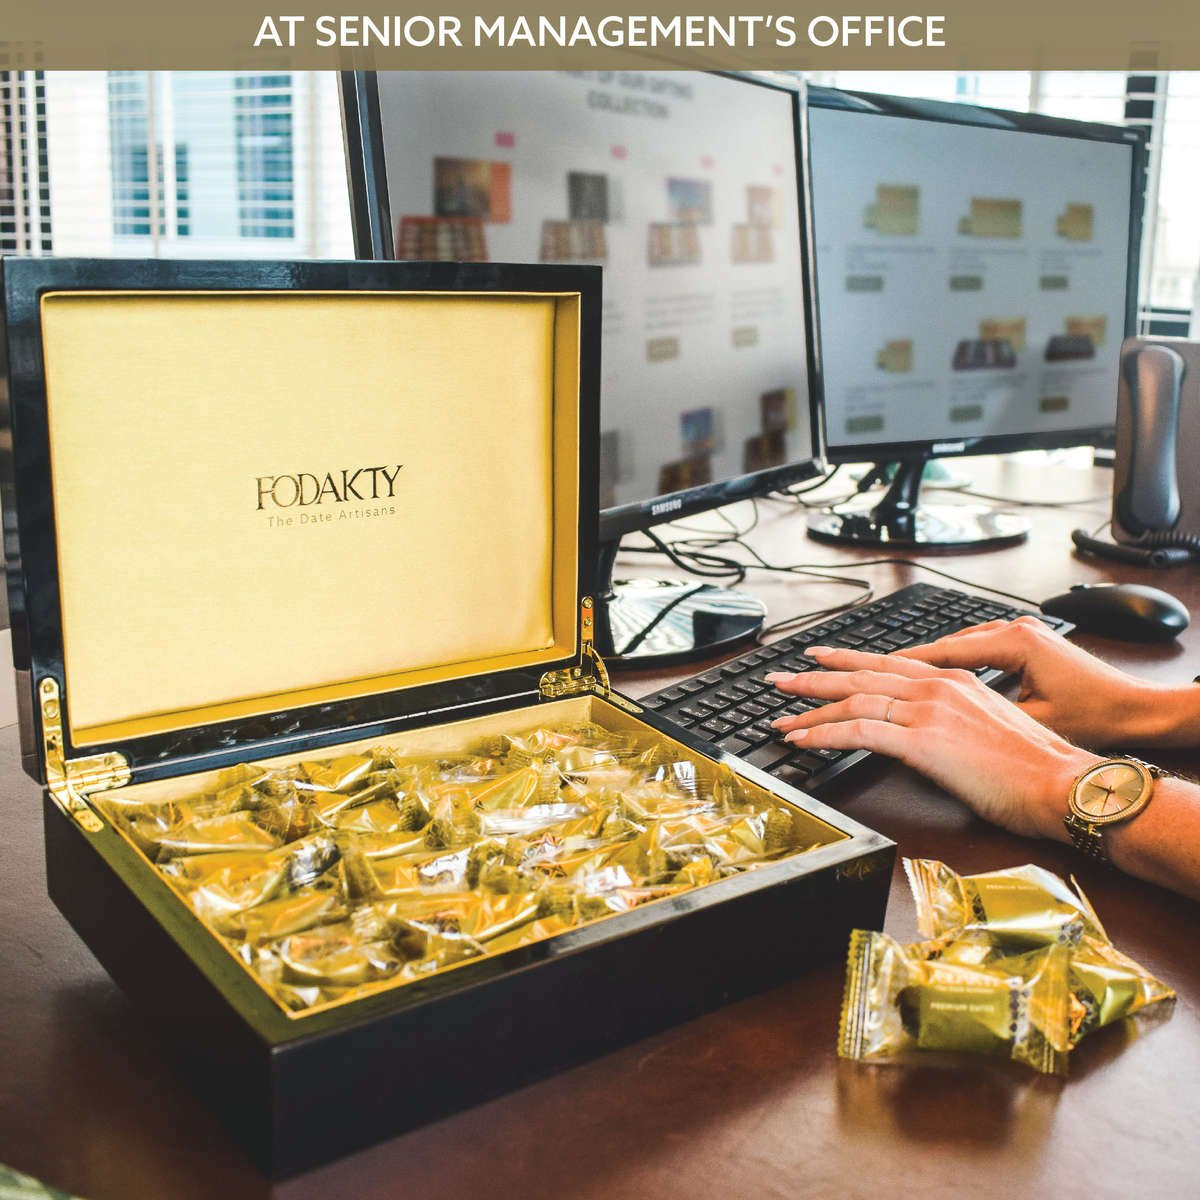 Fodakty dates subscription service senior management office